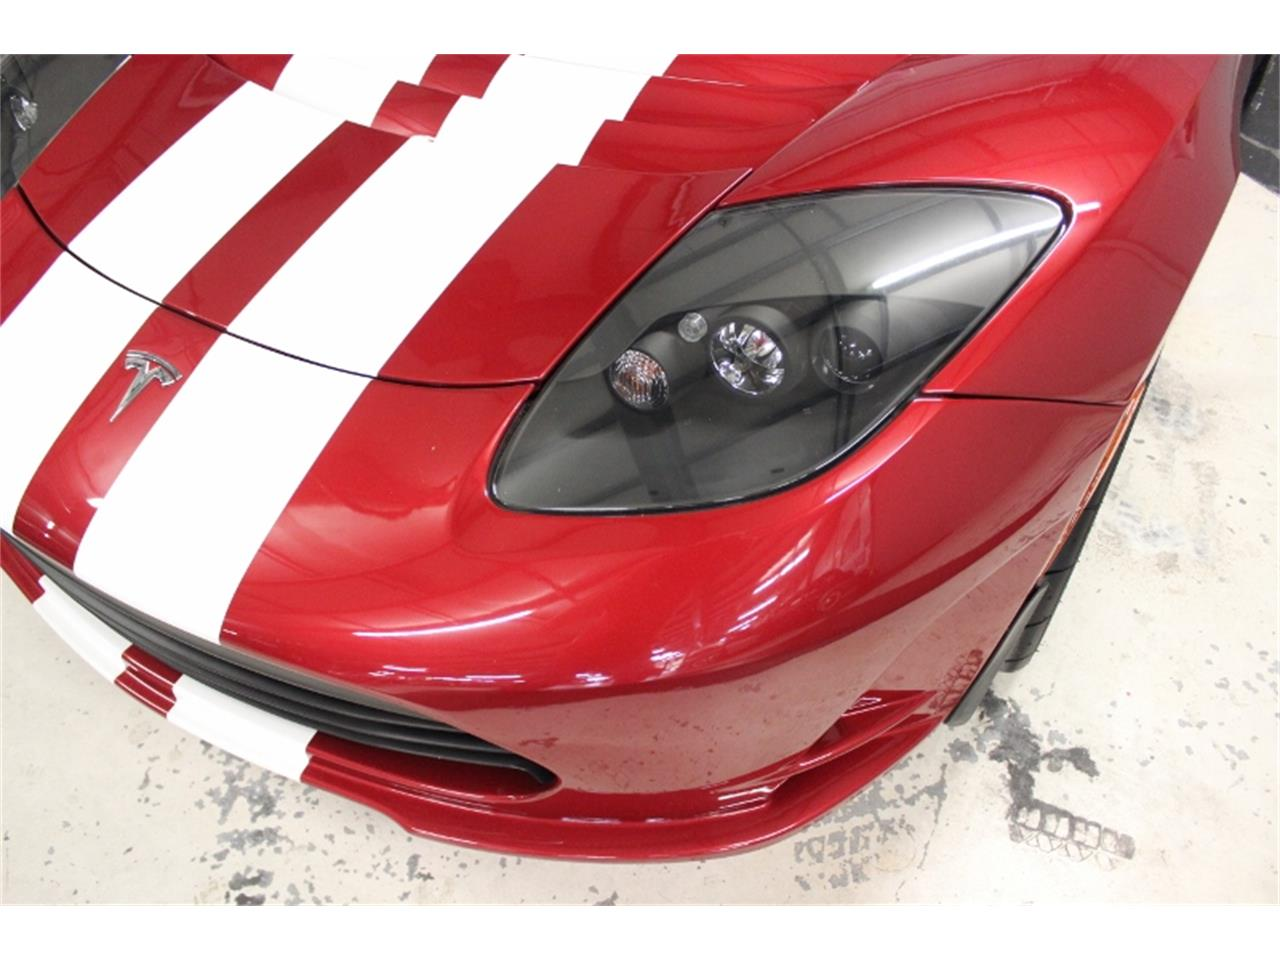 Large Picture of '11 Tesla Roadster located in North Carolina Offered by East Coast Classic Cars - PUDM